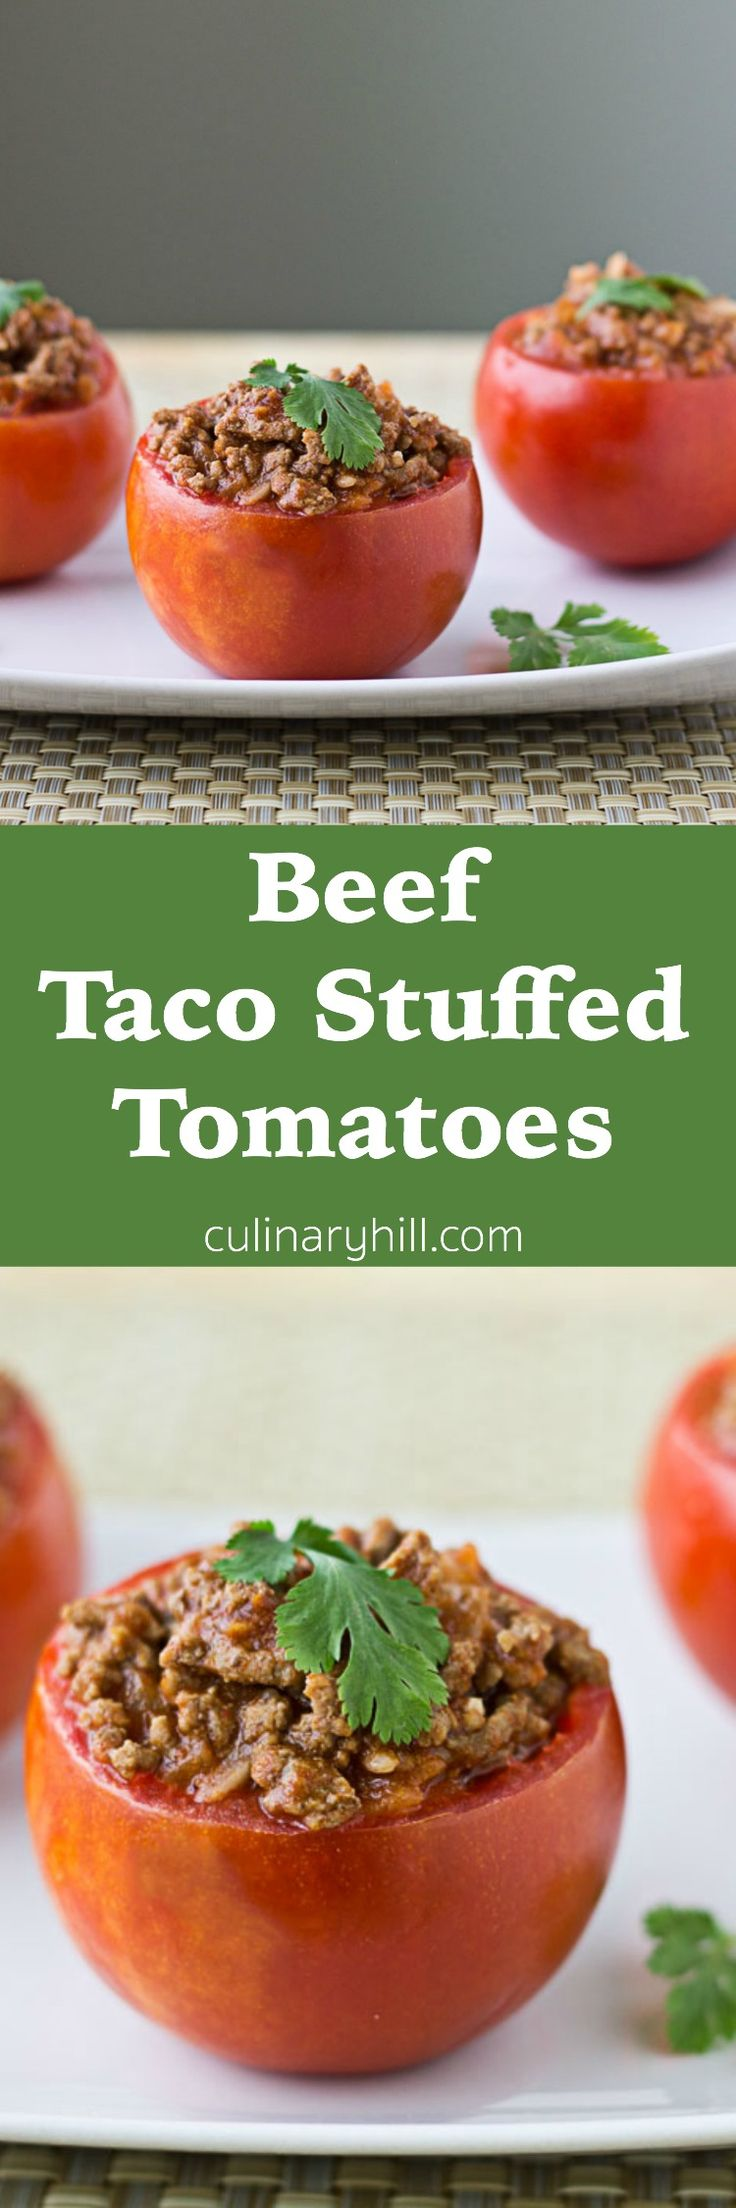 Beef Taco Stuffed Tomatoes combine seasoned meat with rice and a tomato sauce blend to make a tasty filling for juicy tomatoes. Ready in about 25 minutes and naturally gluten free!